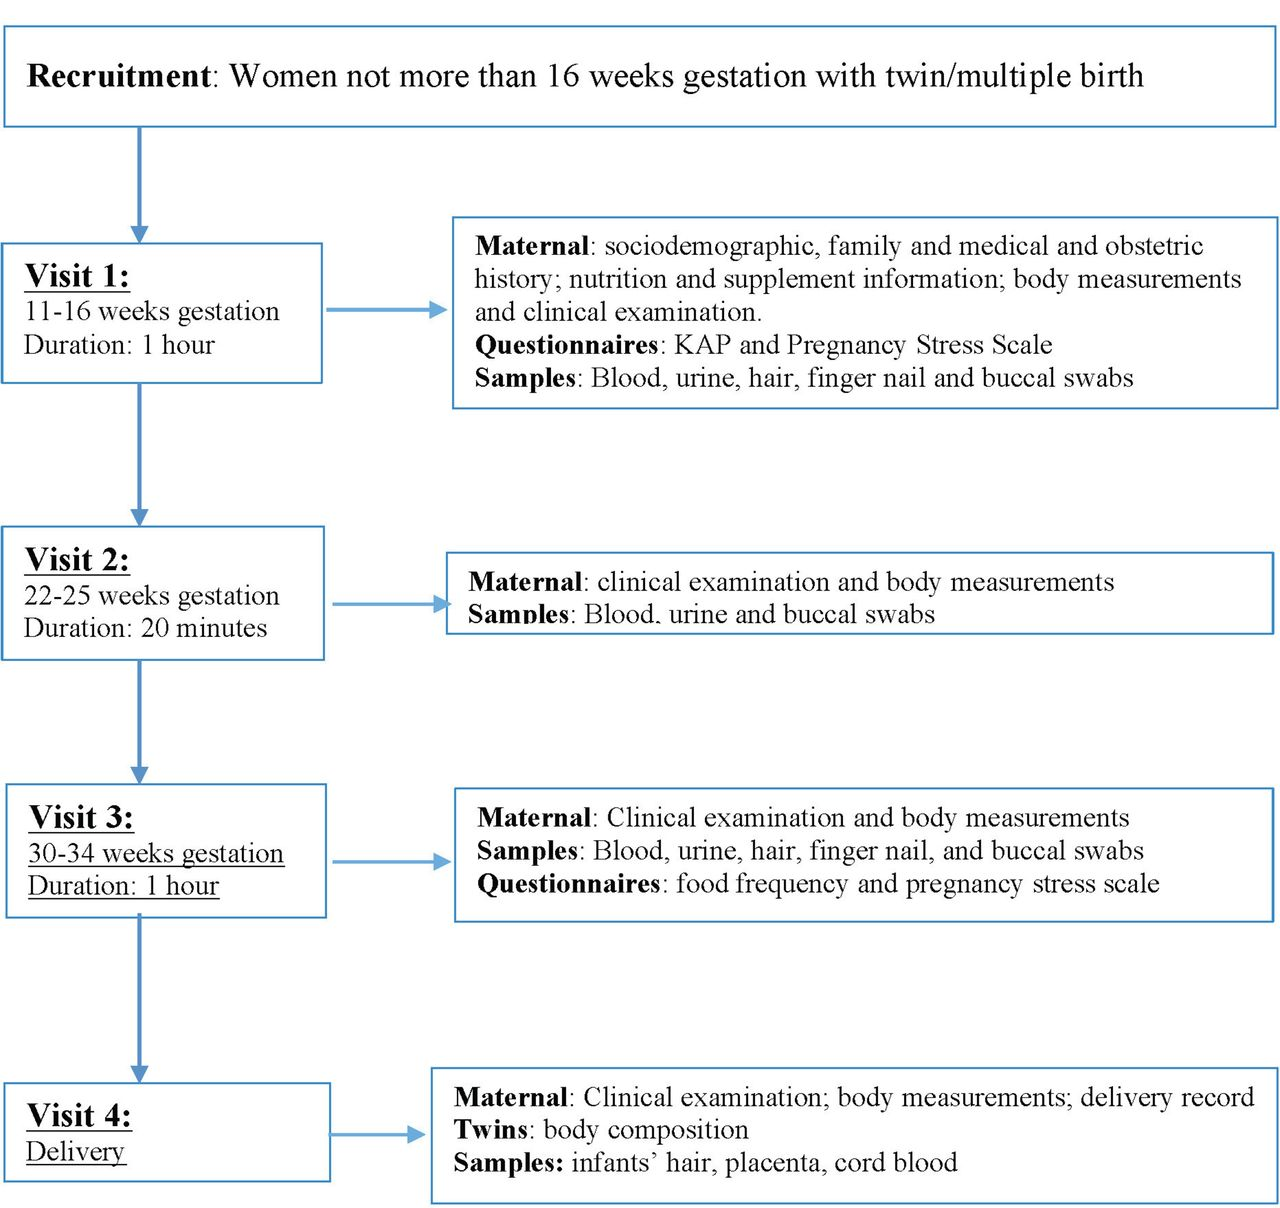 Protocol for a longitudinal twin birth cohort study to